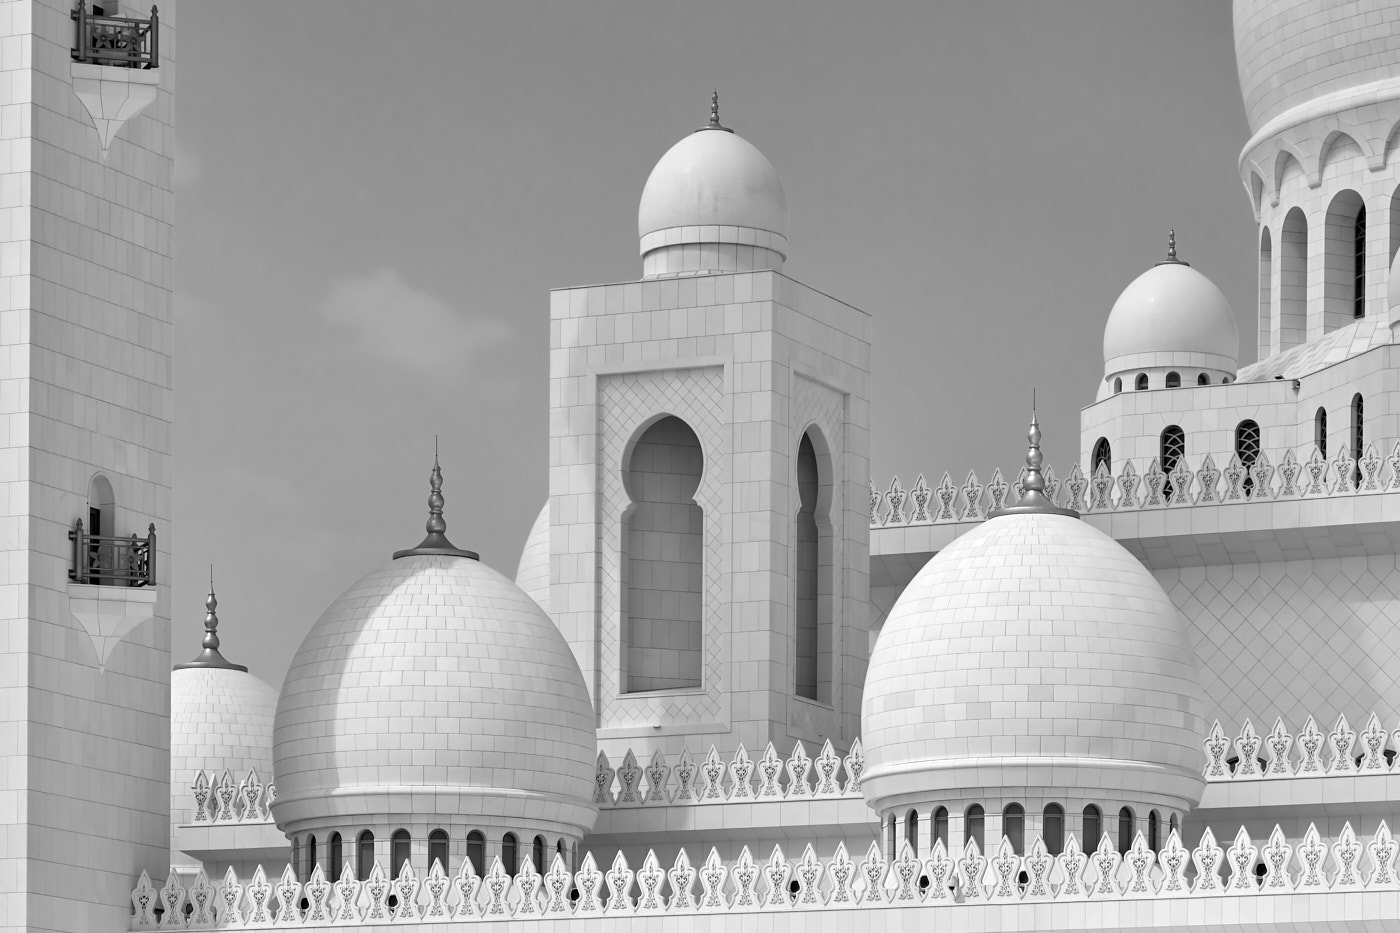 Image: Sheikh Zayed Grand Mosque